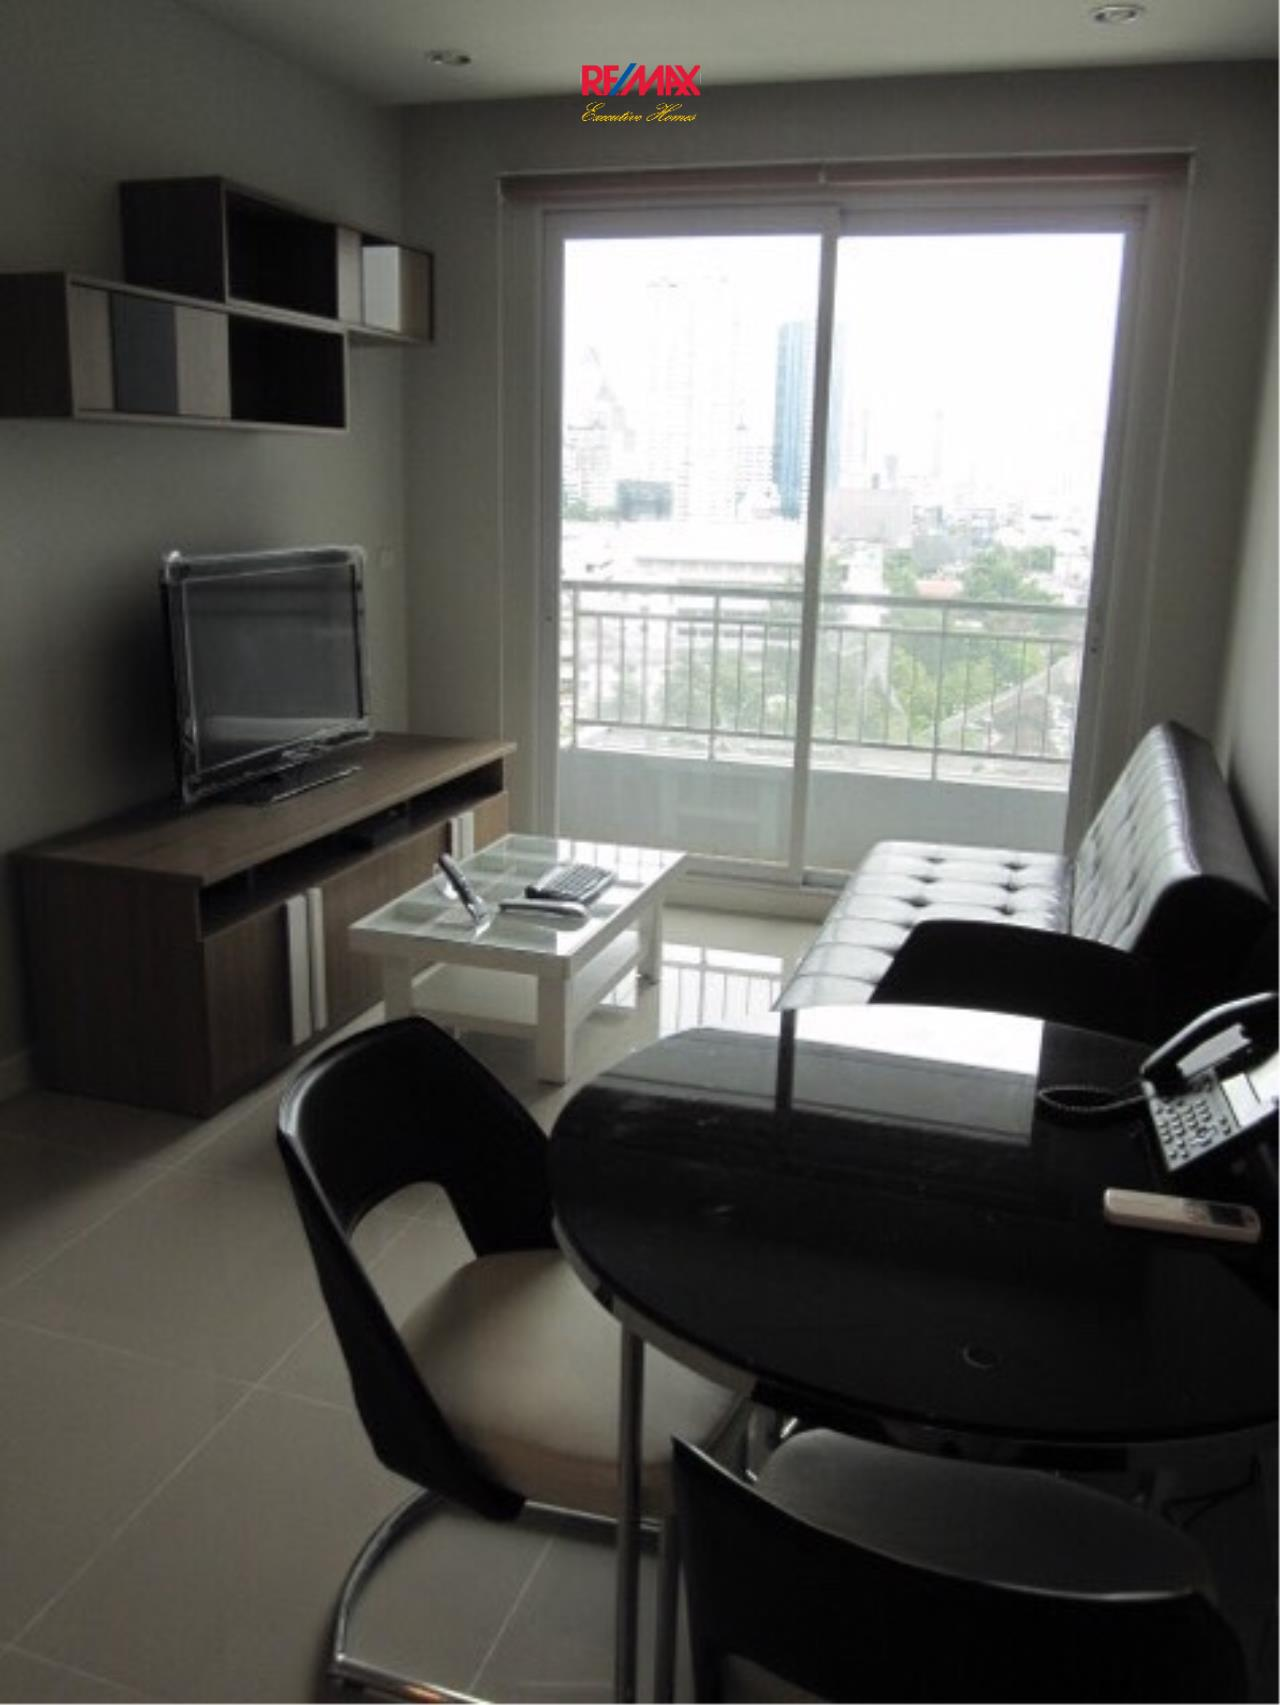 RE/MAX Executive Homes Agency's Nice 1 Bedroom for Sale with Tenant Circle Condominium 3